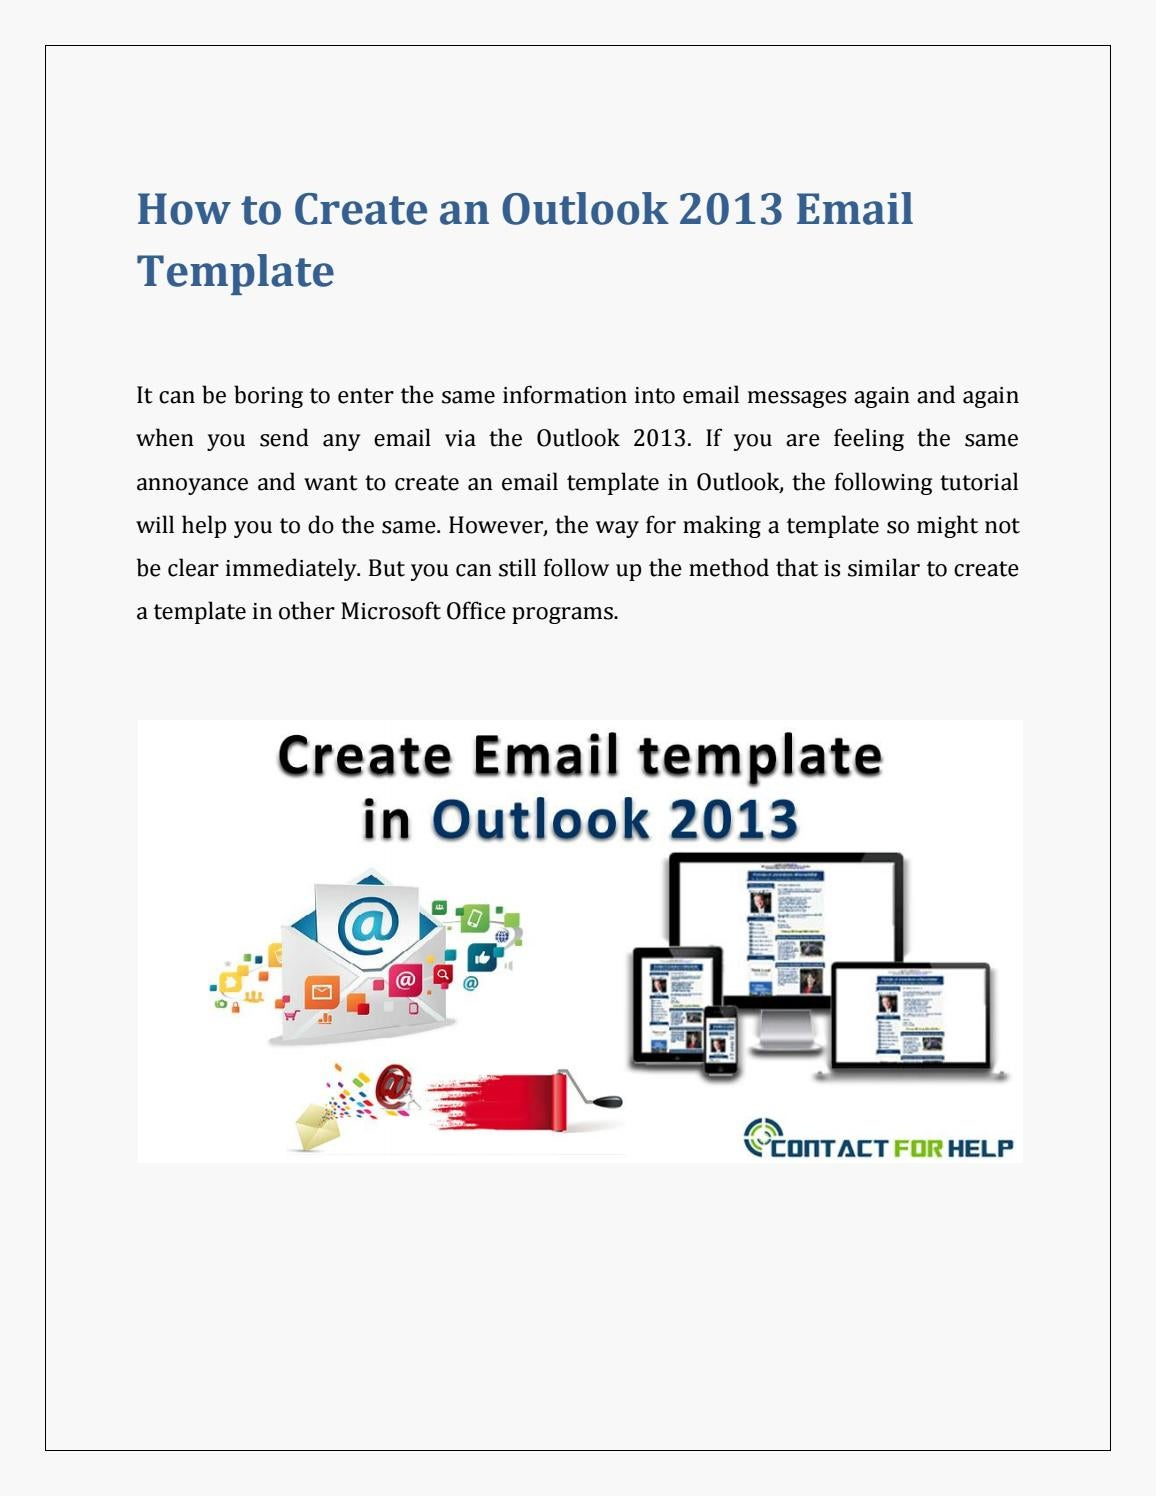 create an email template in outlook 2013 by lisa heydon issuu. Black Bedroom Furniture Sets. Home Design Ideas